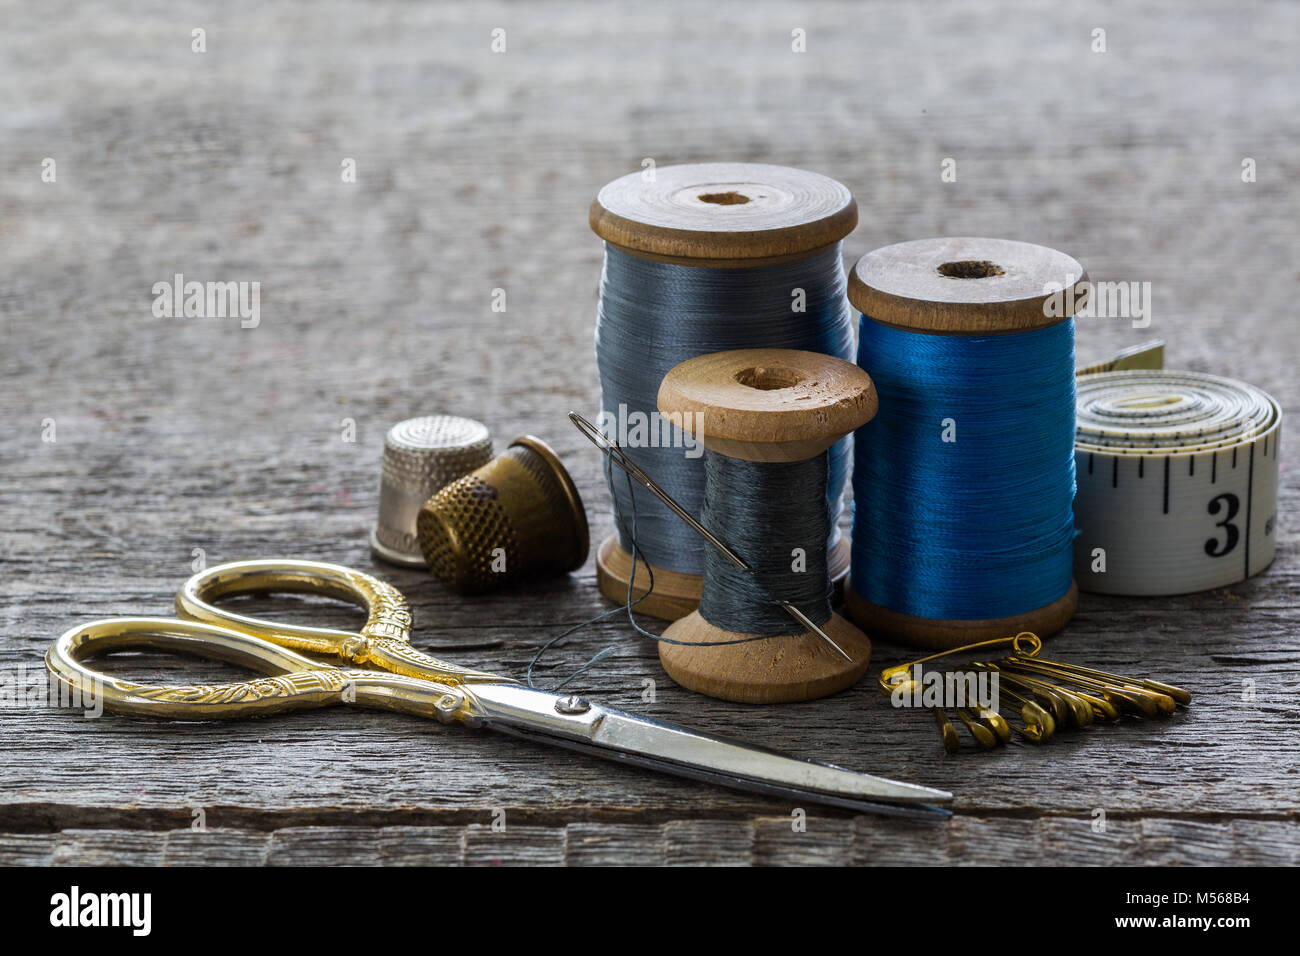 Sewing threads, coils - Stock Image